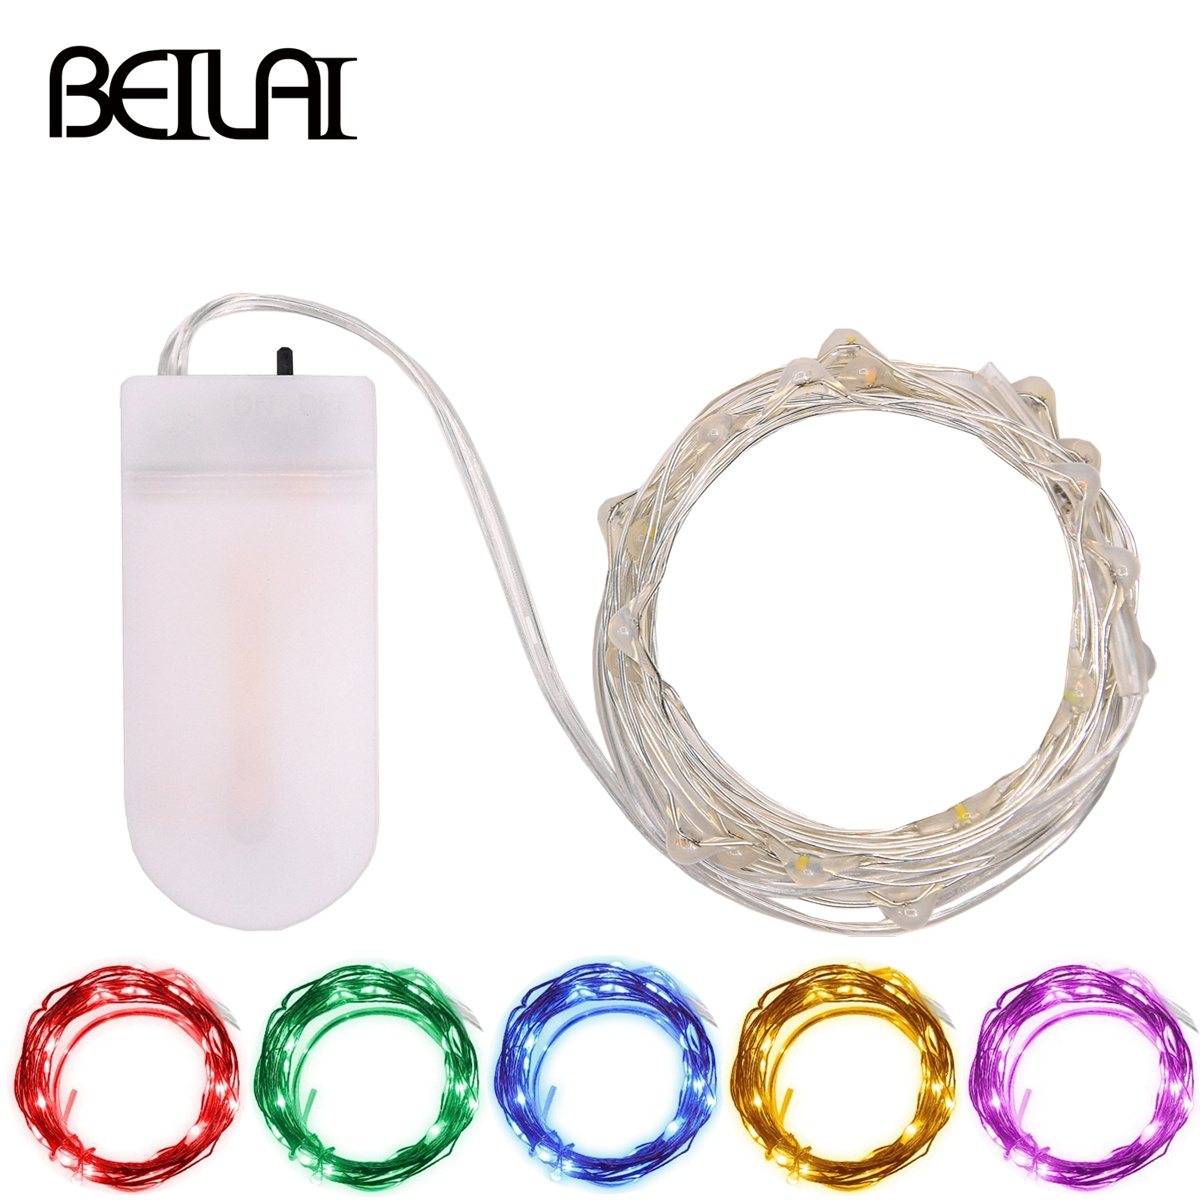 2M 20LED Fairy LED String Lights Silver Wire CR2032 Battery Operated LED Holiday Lights For Christmas Wedding Party Decoration